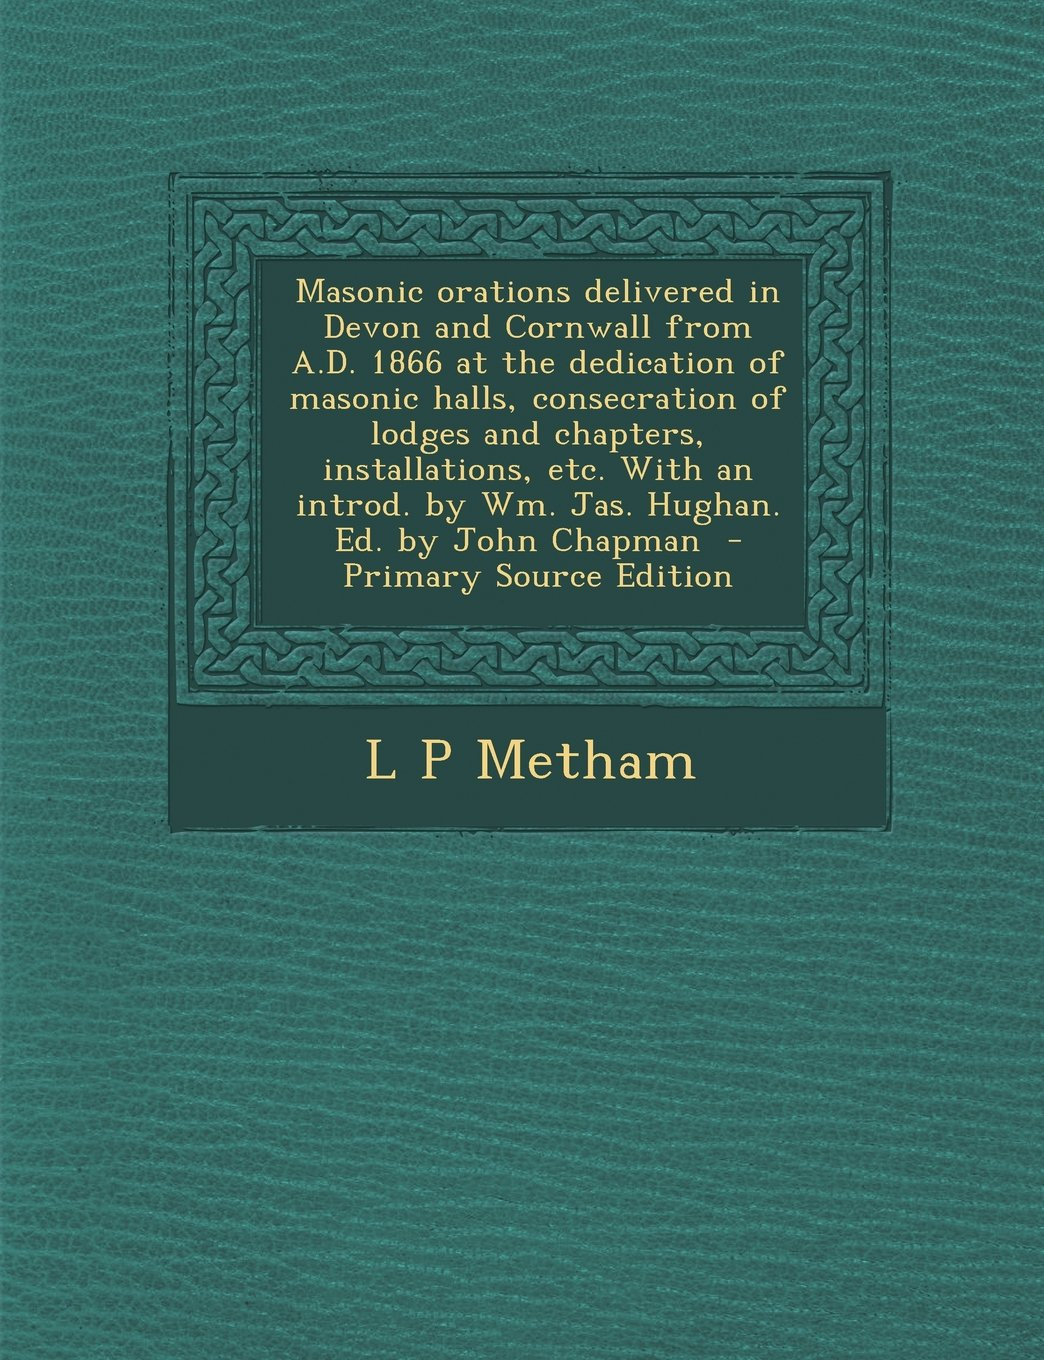 Download Masonic orations delivered in Devon and Cornwall from A.D. 1866 at the dedication of masonic halls, consecration of lodges and chapters, ... by Wm. Jas. Hughan. Ed. by John Chapman pdf